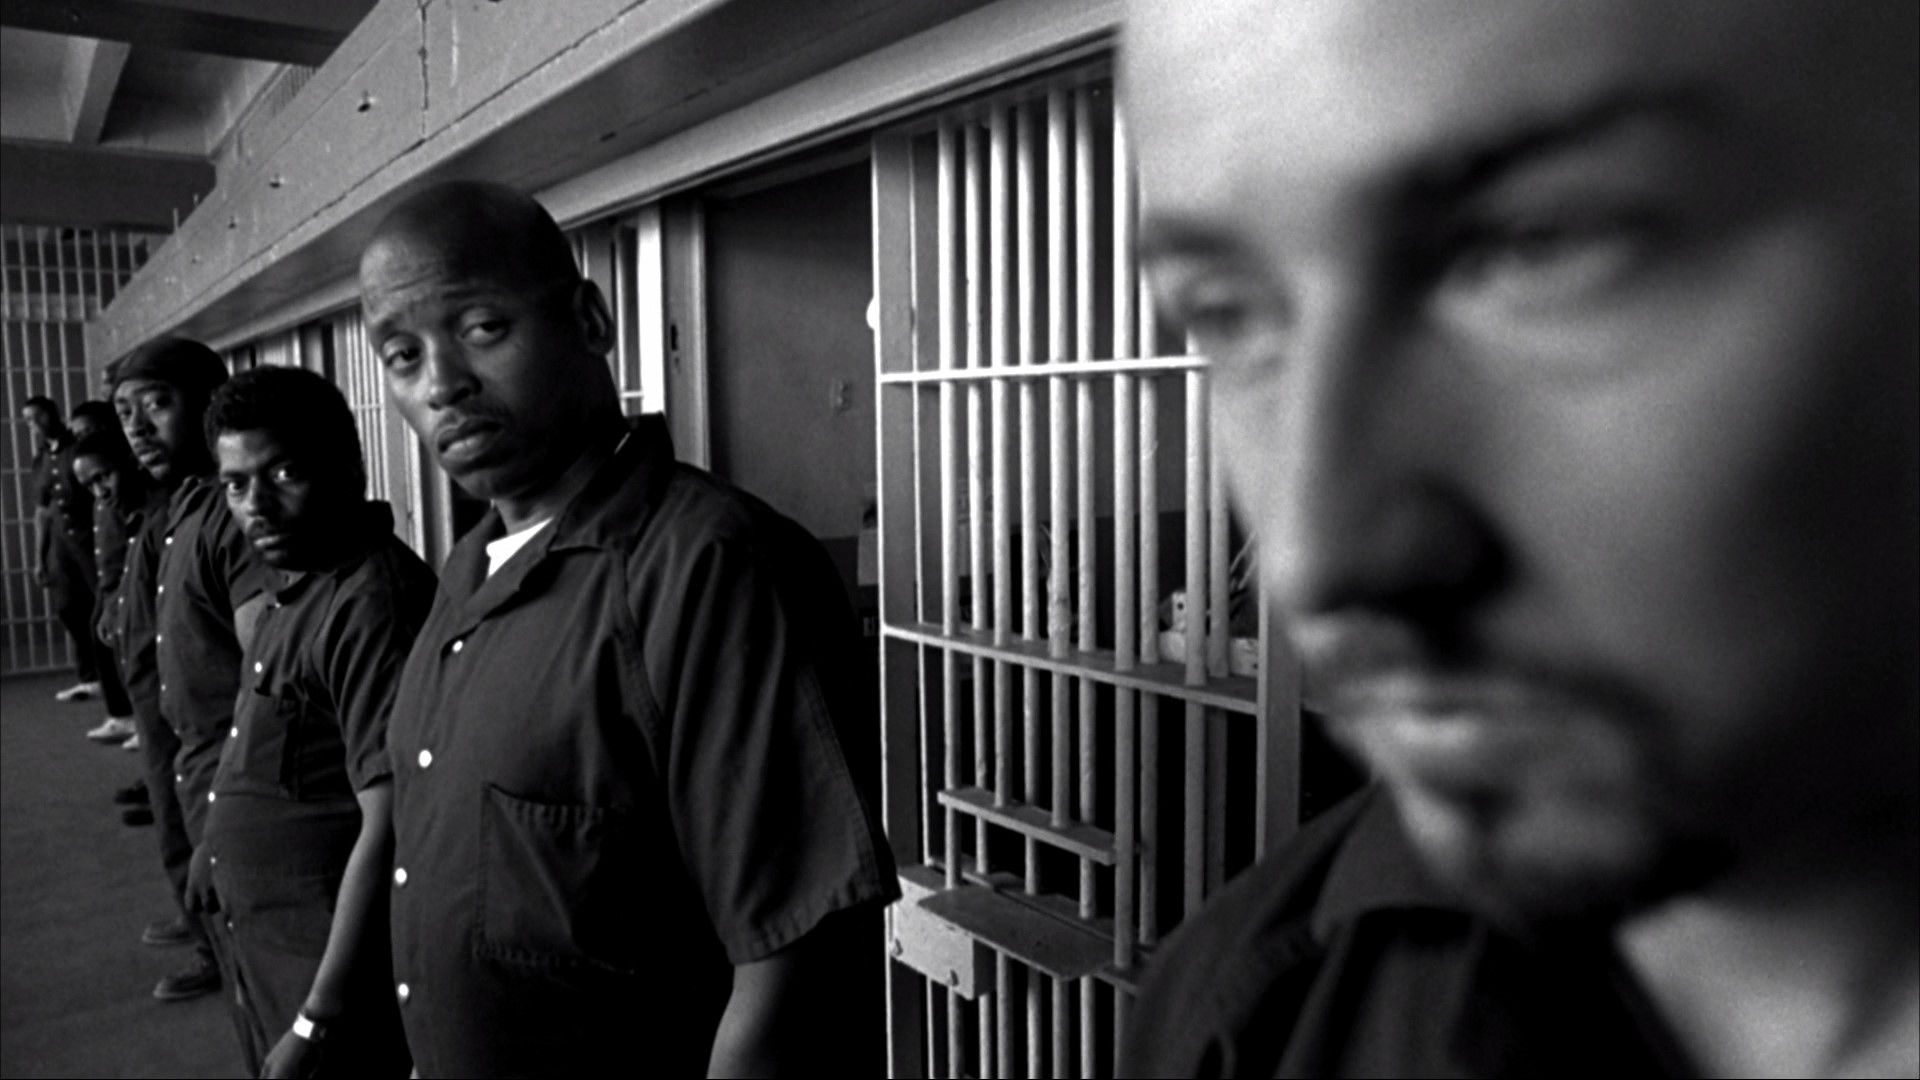 Could some one tell me where to find danny`s vinyard (from american history x) compleate assay?